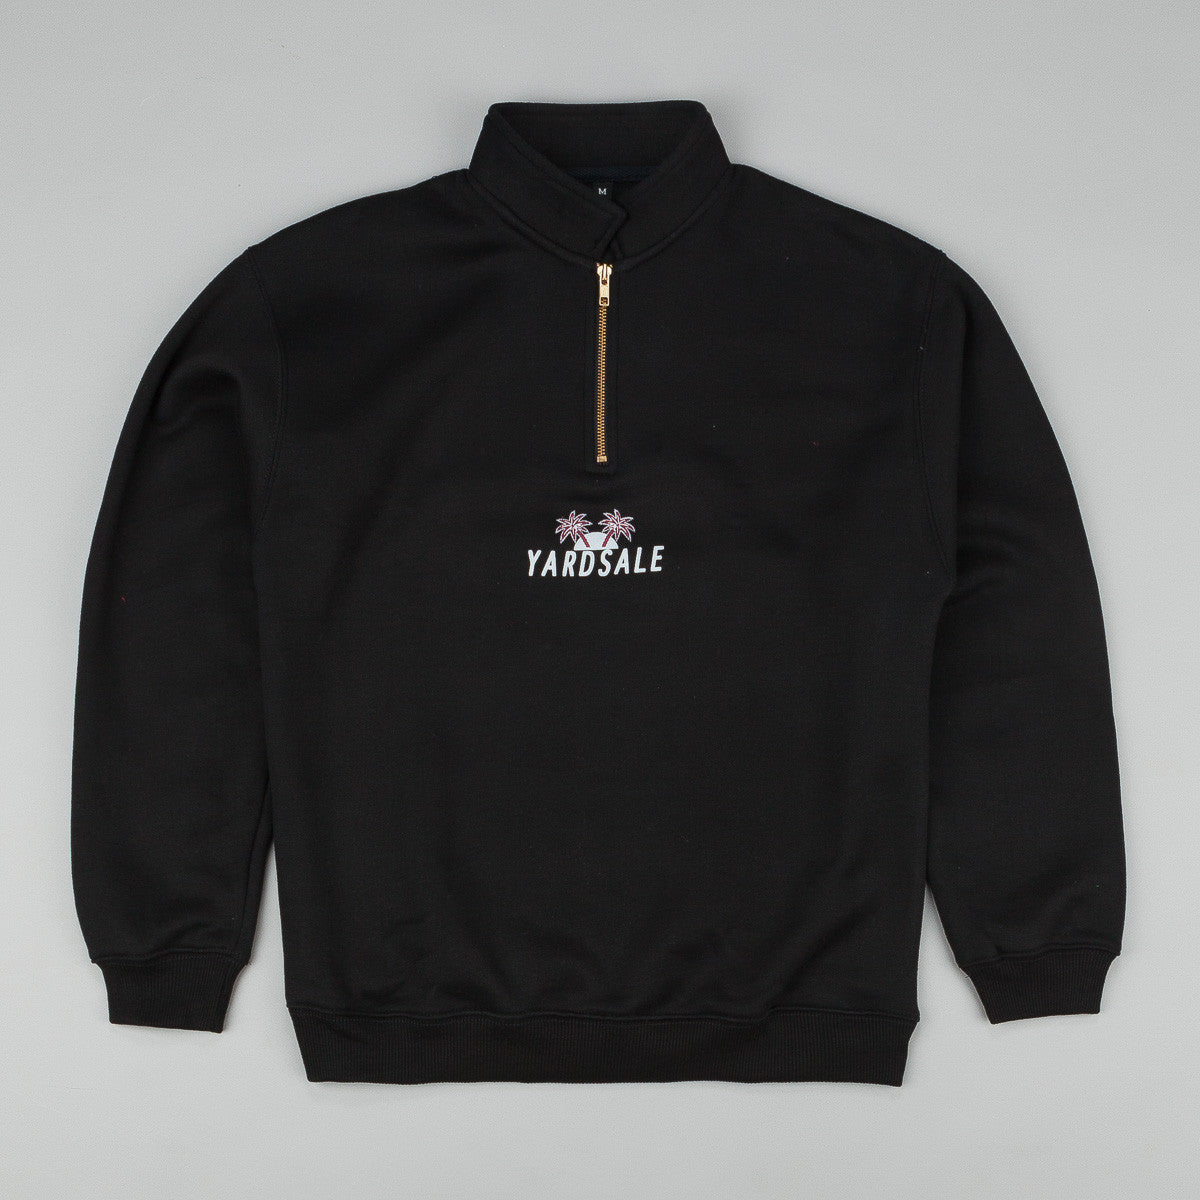 Yardsale Quarter Zip Sweatshirt Black